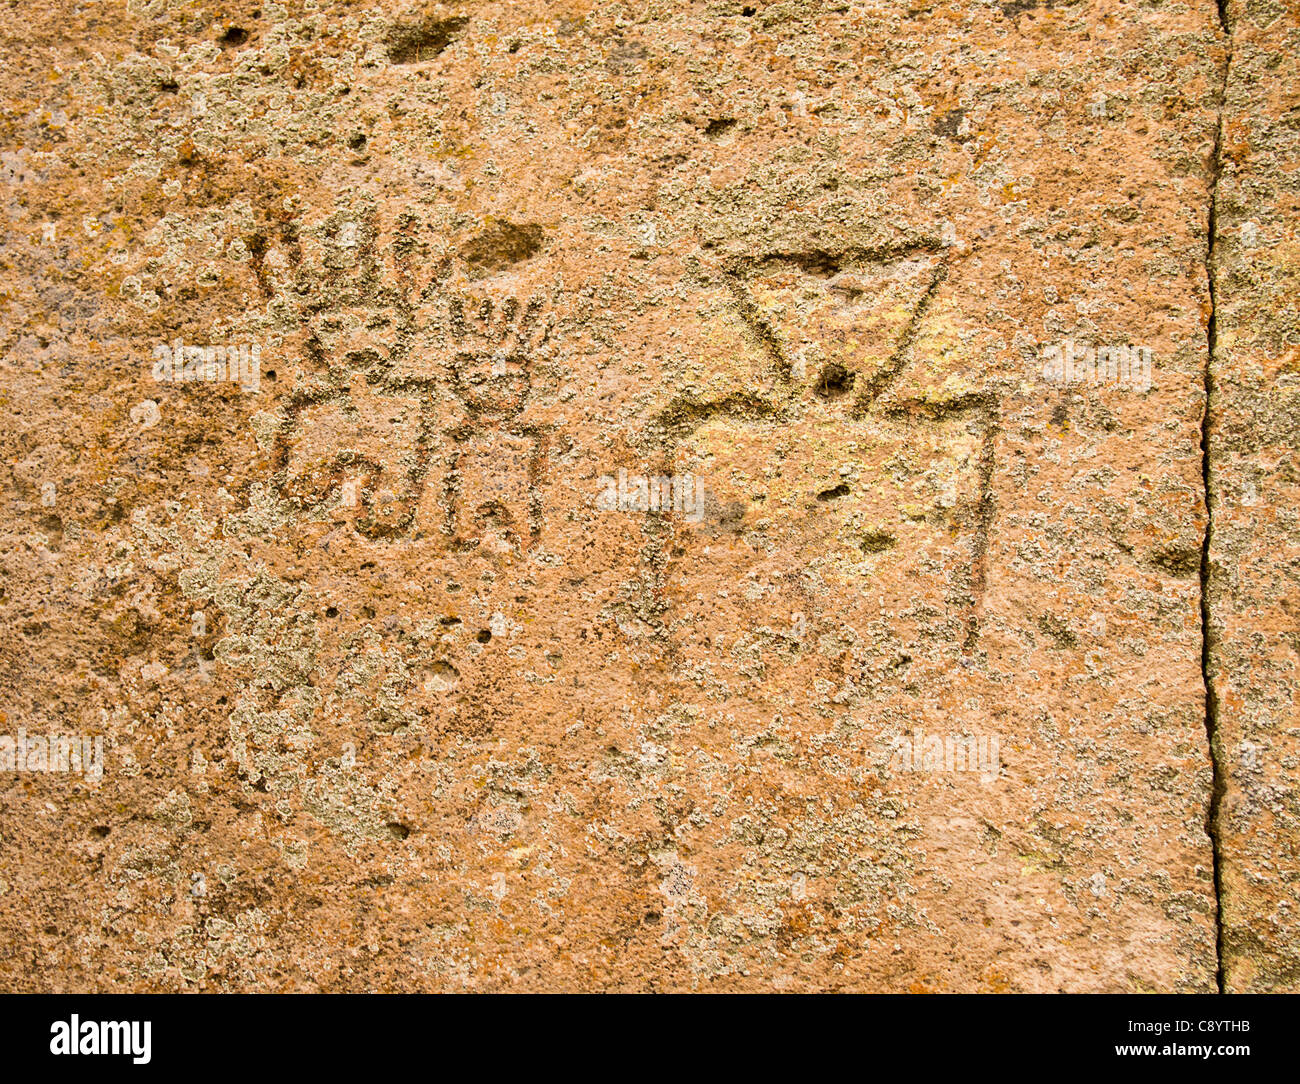 Native American Petroglyphs - Stock Image